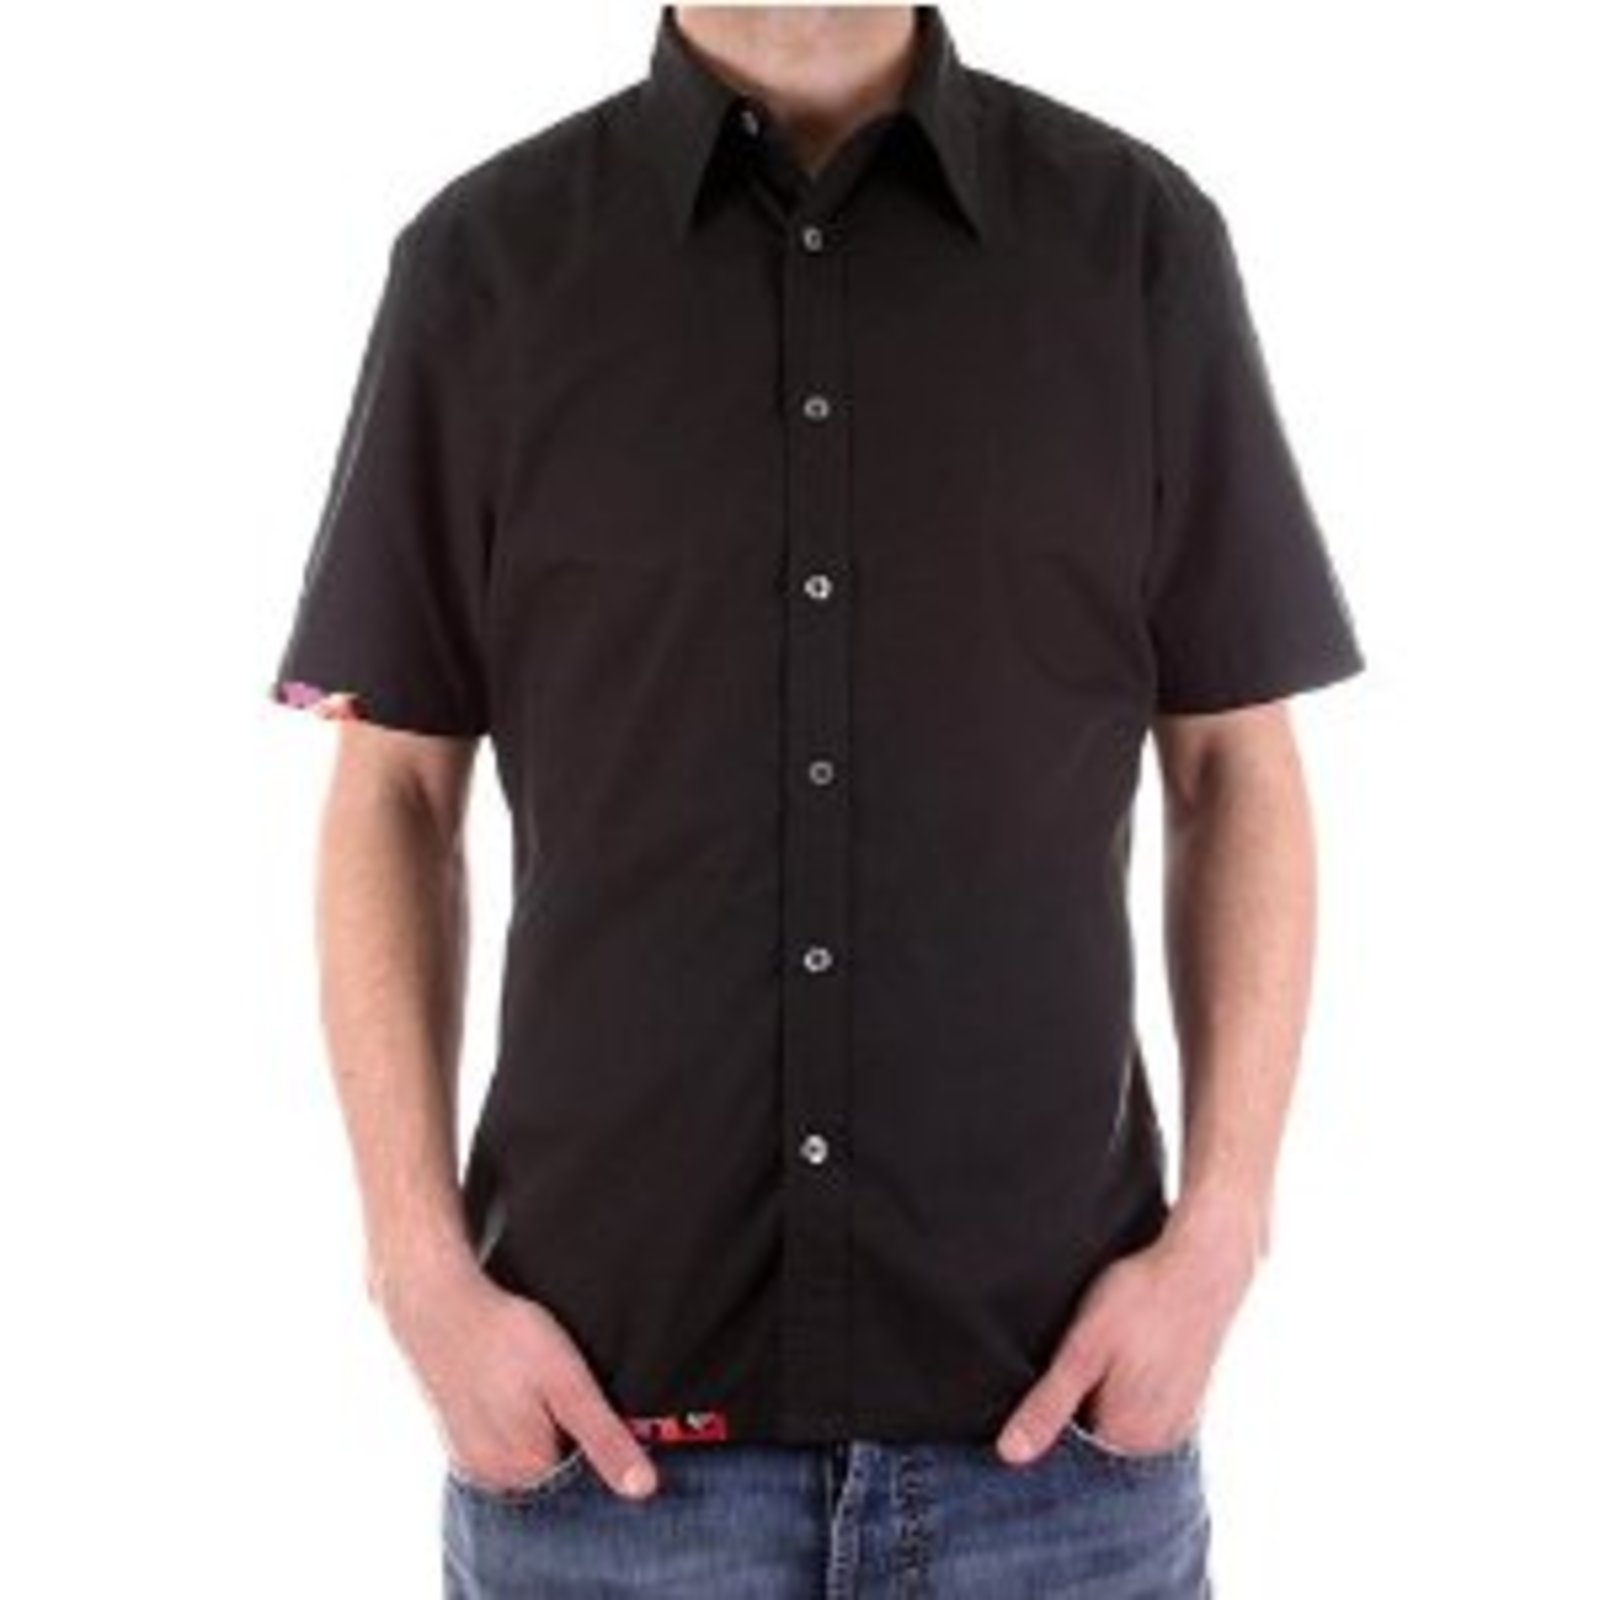 Paul smith casual shirt mens black short sleeve shirt for Men s fashion short sleeve shirts